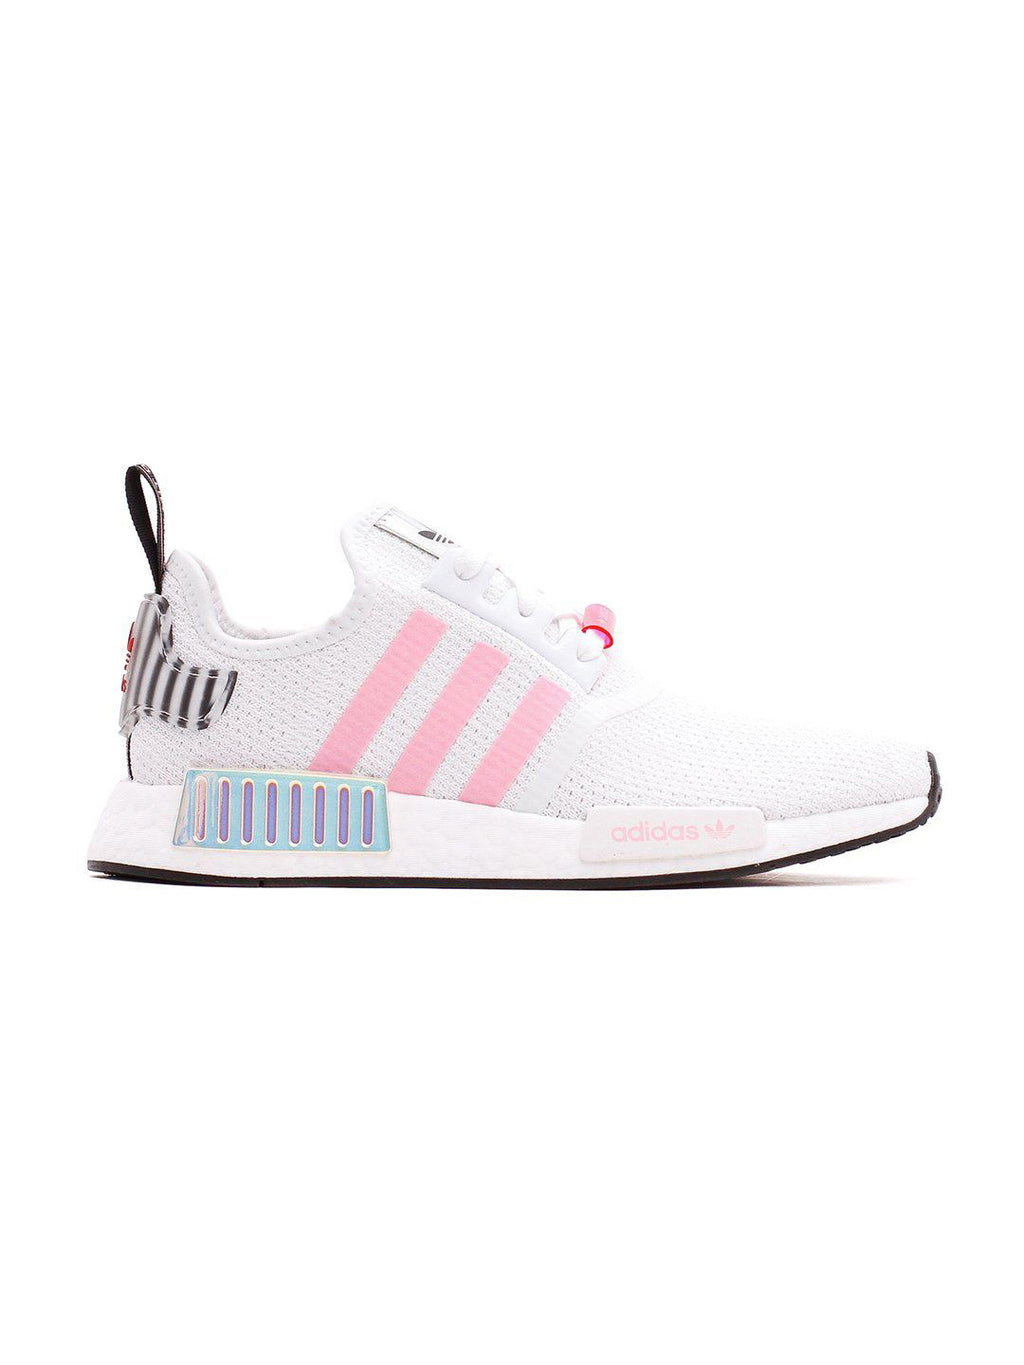 White & Pink NMD R1 Boost Sneakers